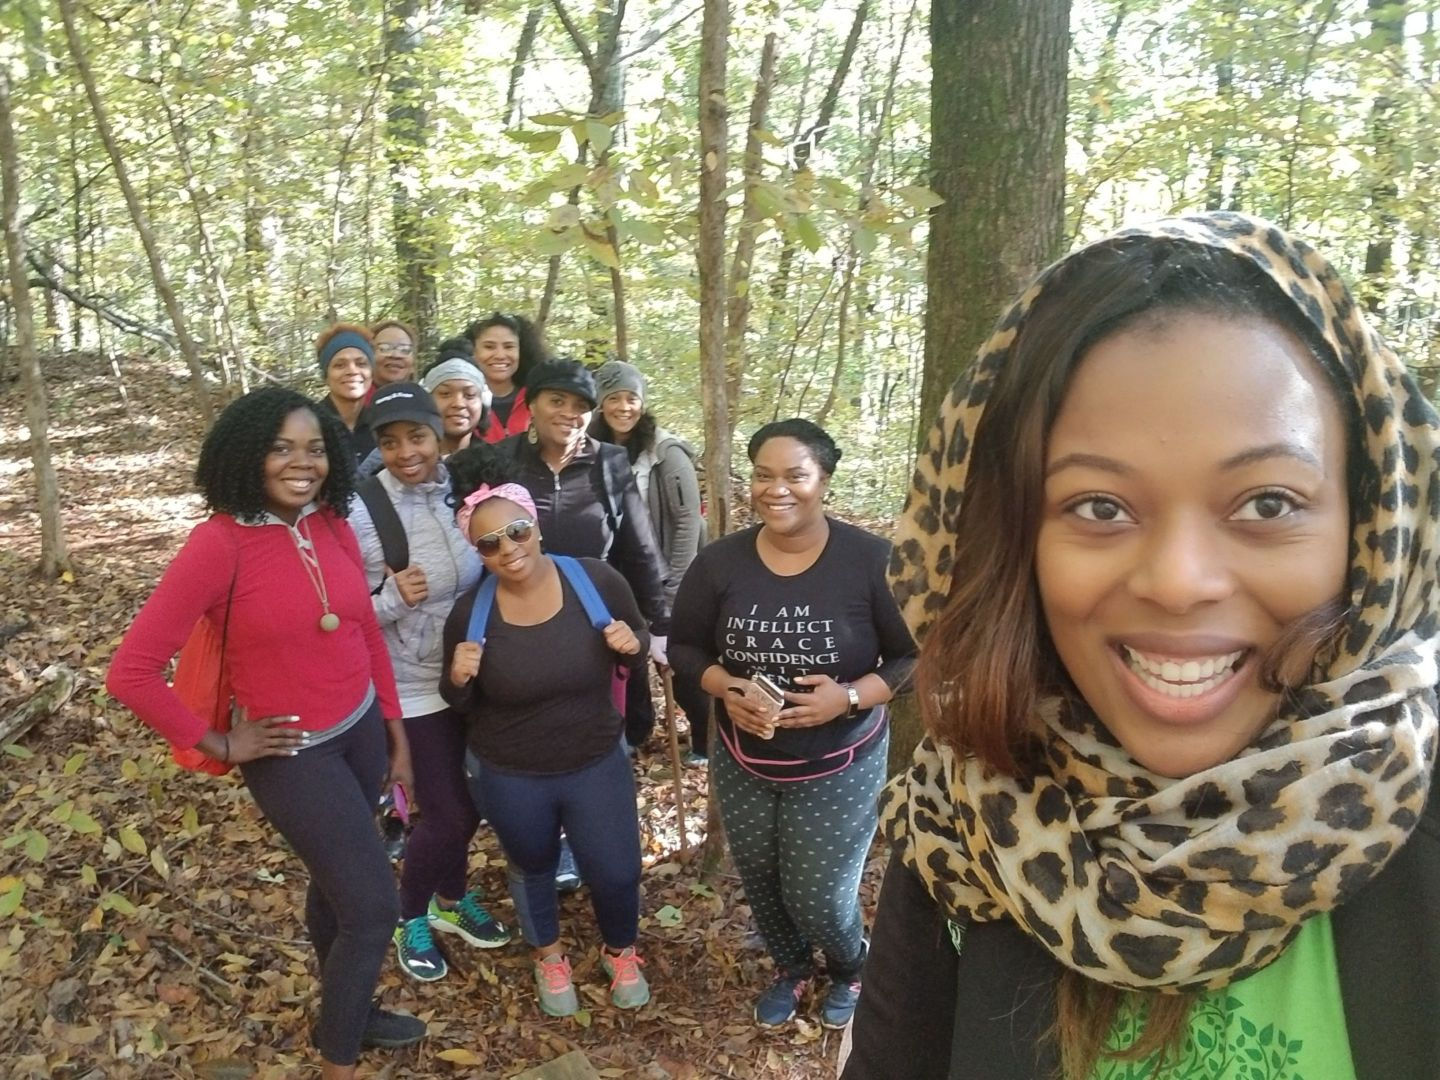 20181103_093455-1440x1080 Ladies Who Hike: Traveling the Birmingham, Alabama Trails